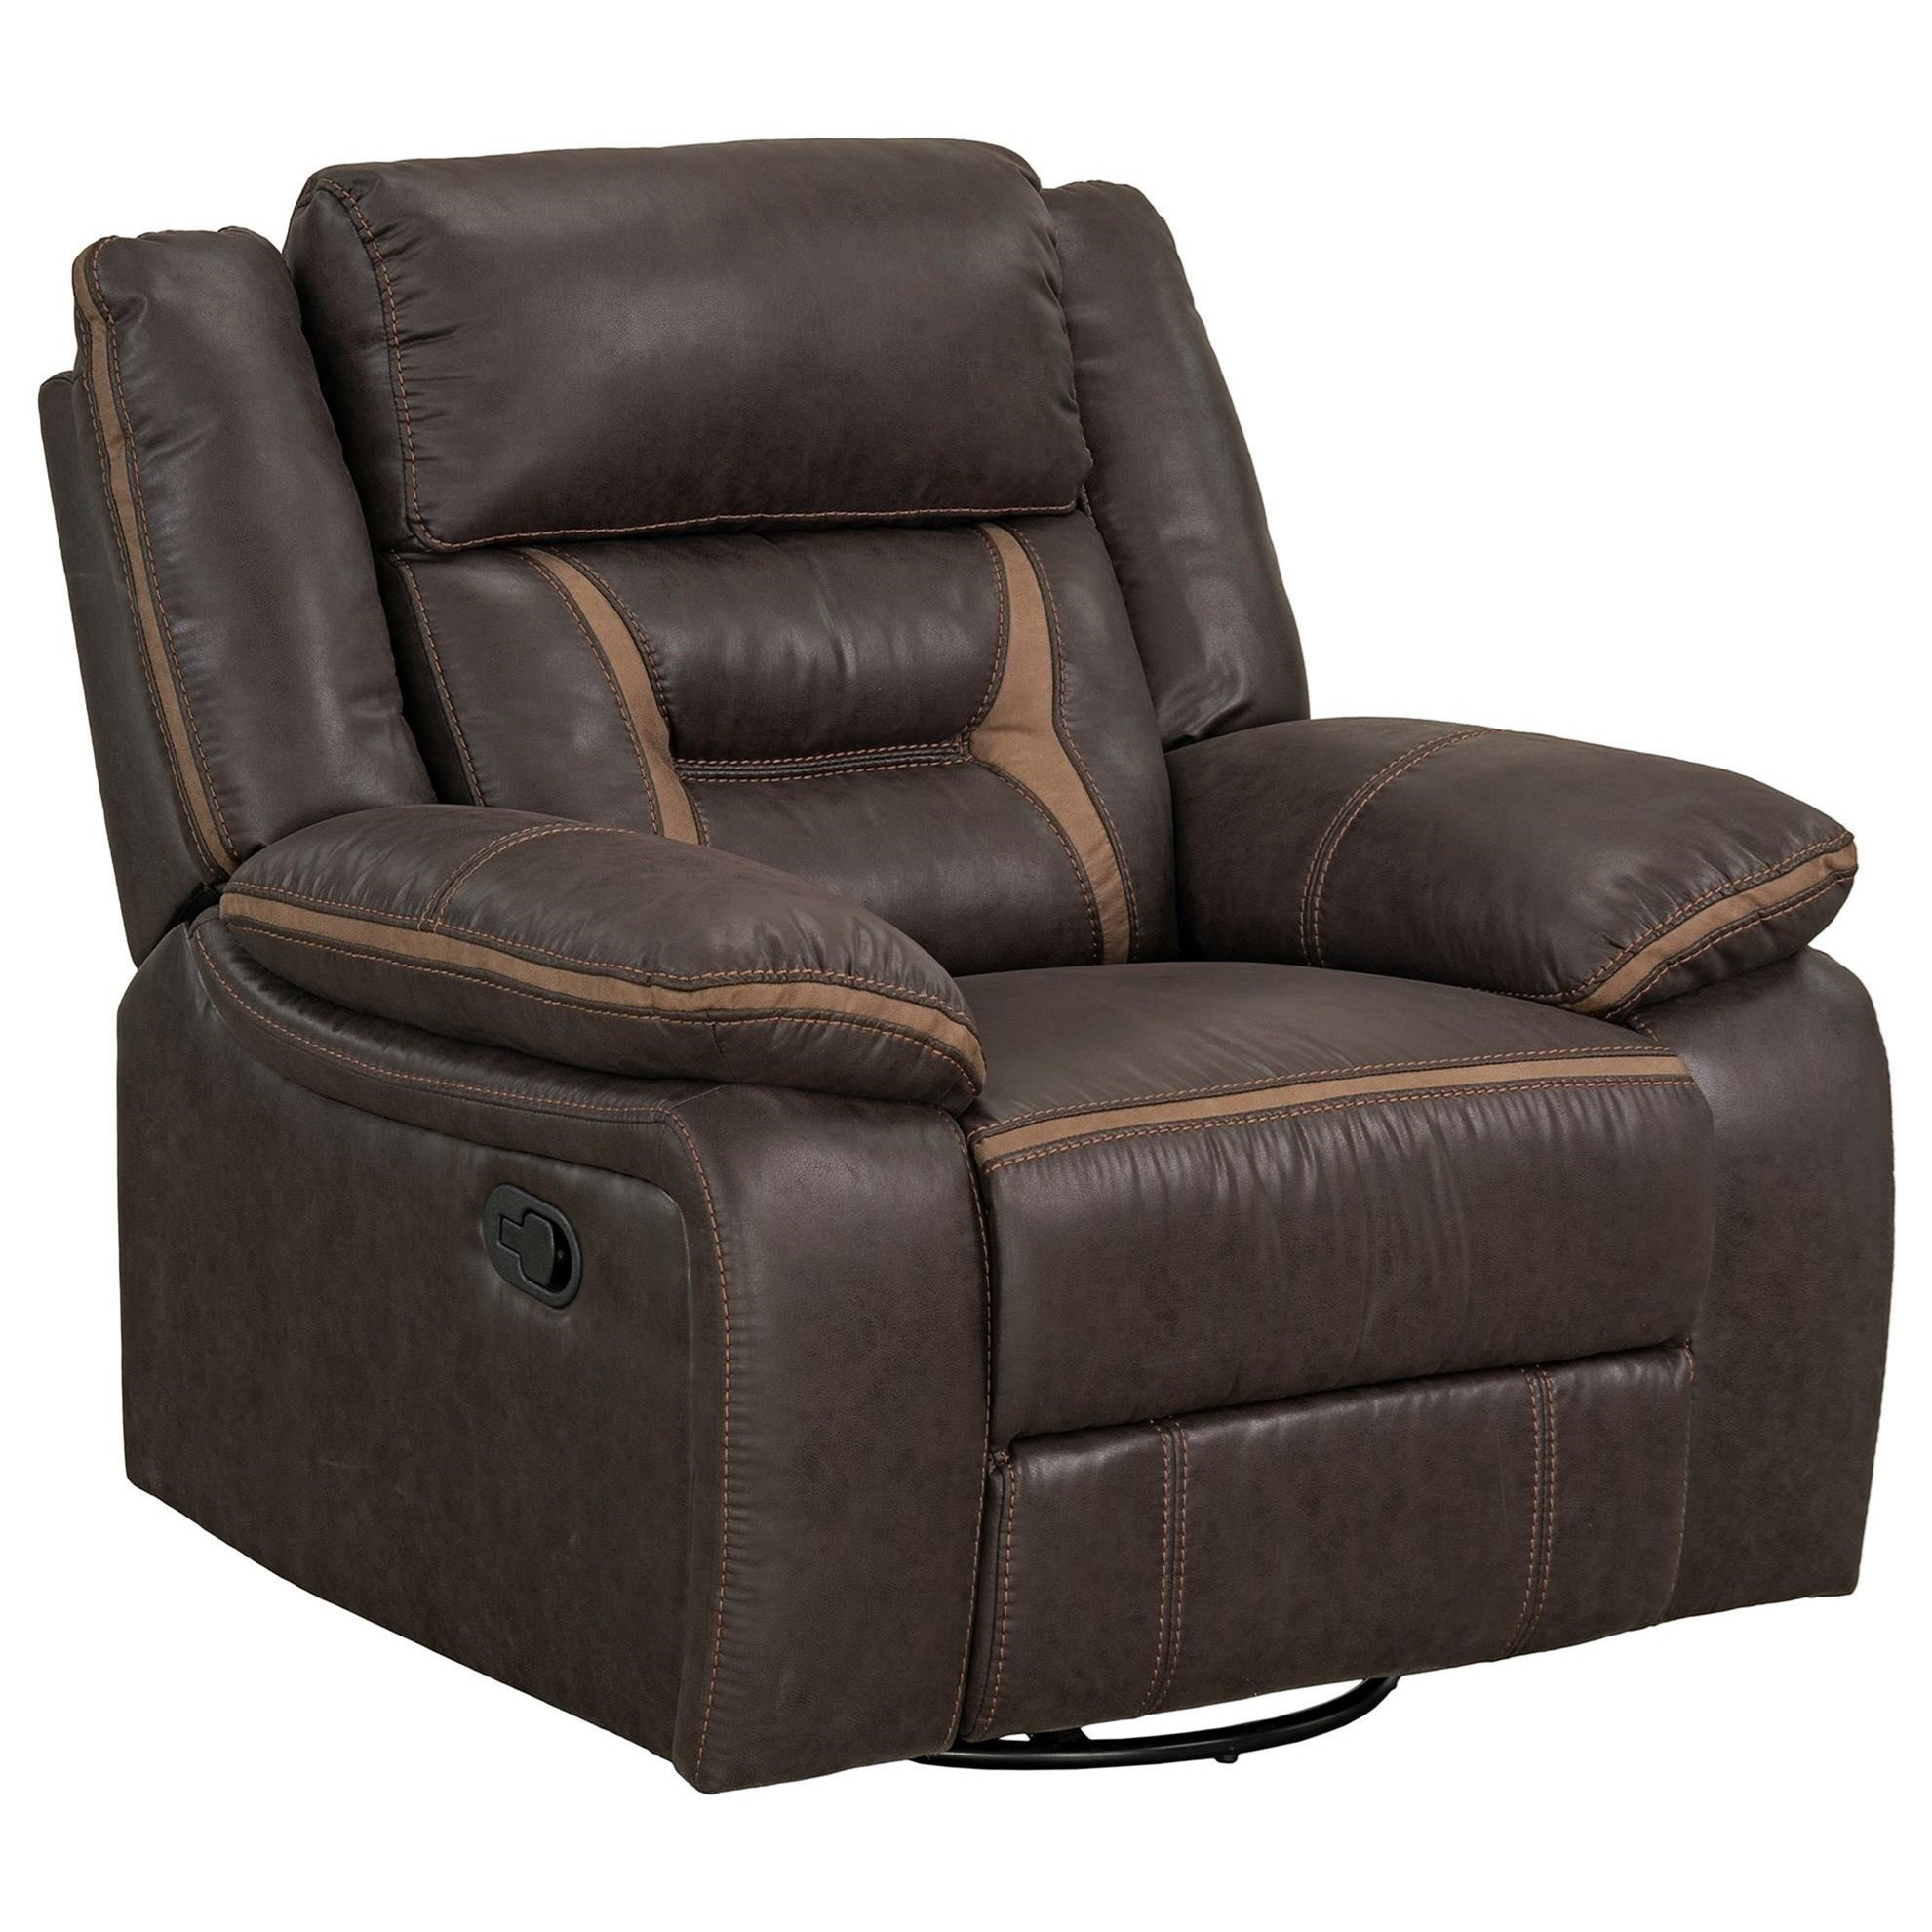 Acropolis Power Glider Swivel Recliner by Standard Furniture at Beds N Stuff